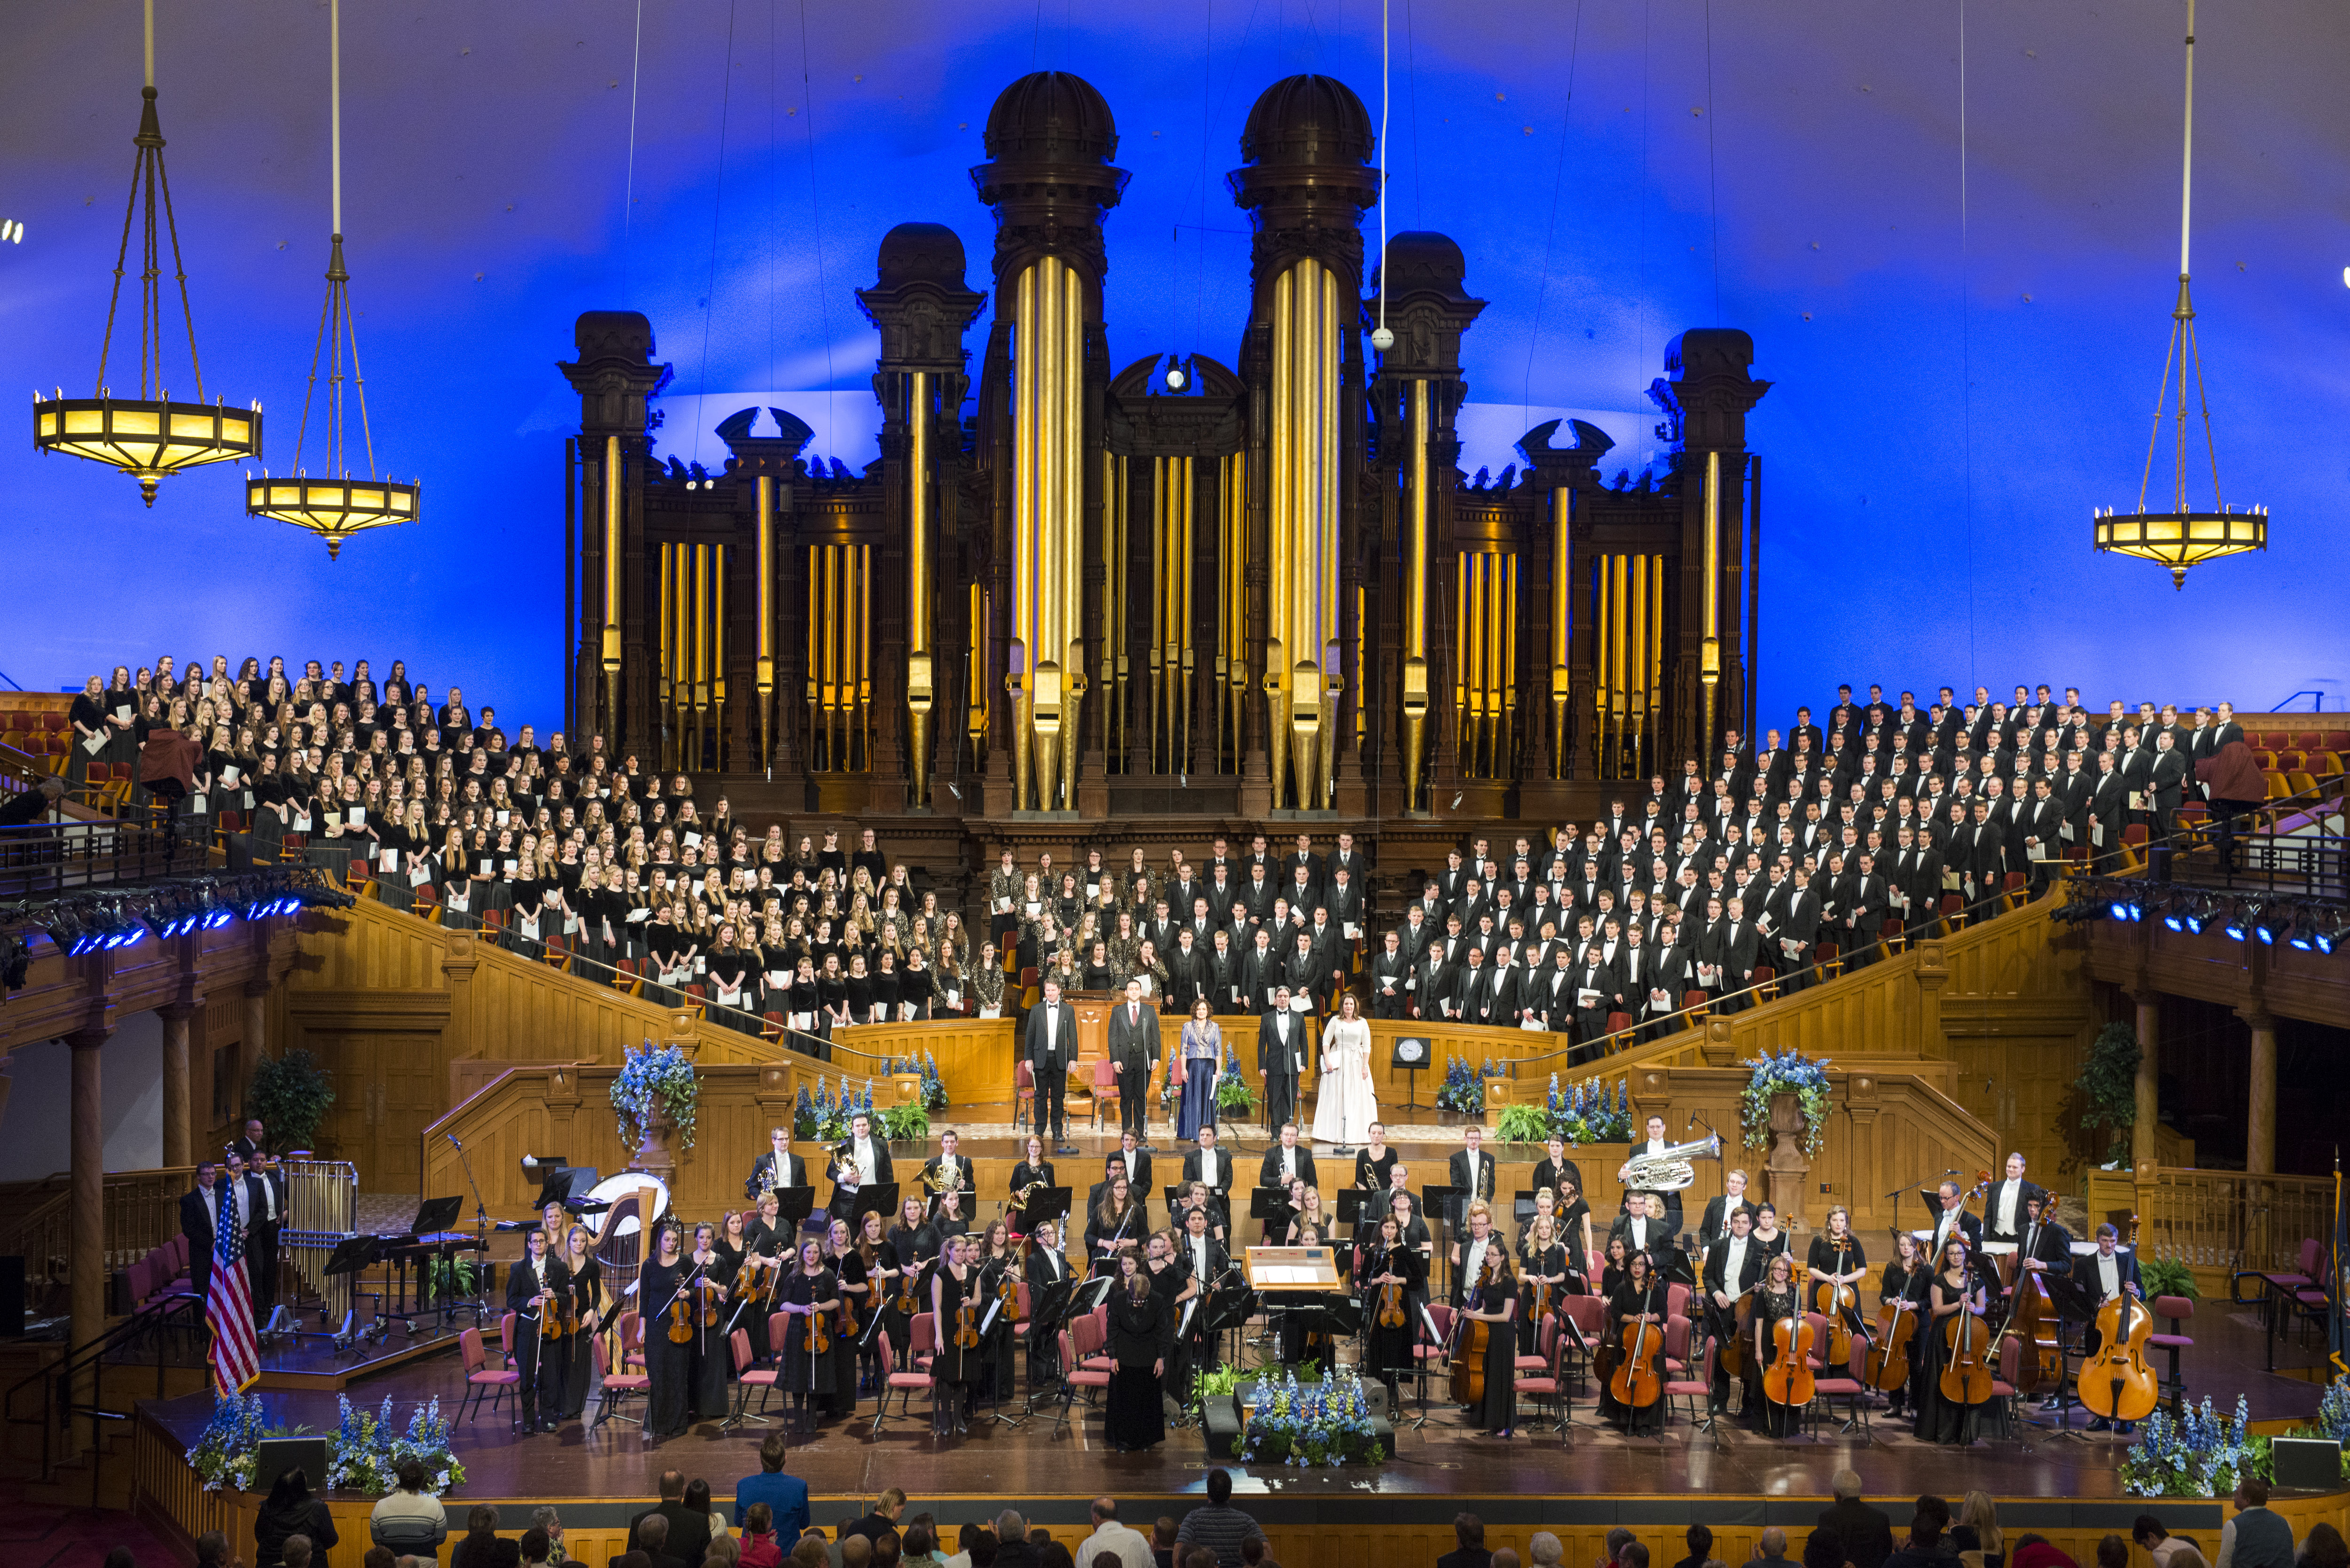 Join the contest to sing with Tabernacle Choir